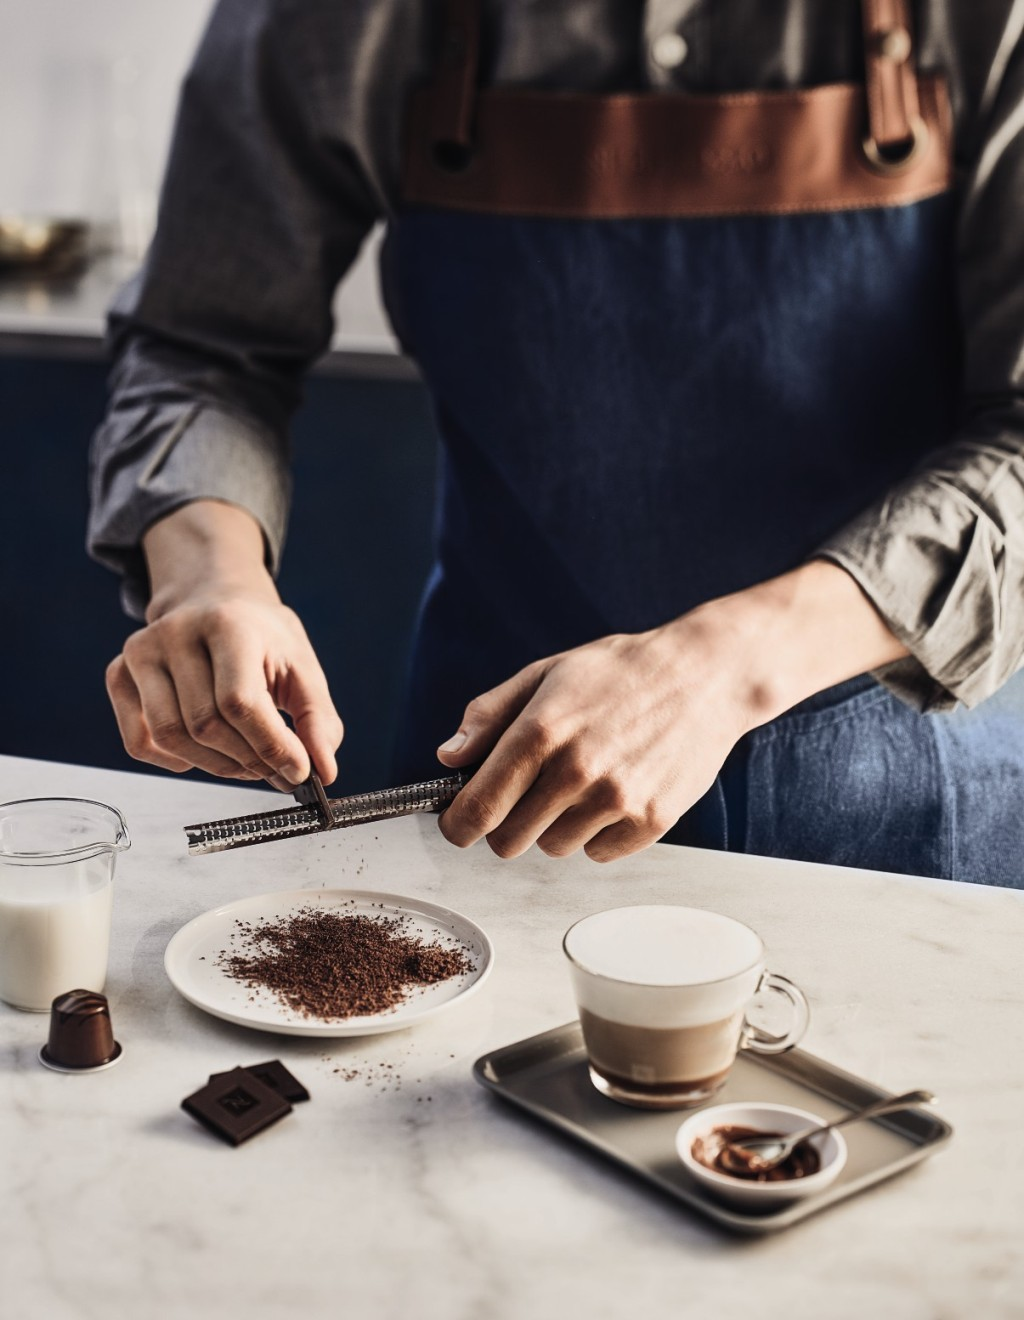 Global_OL_ALL_SONespresso34_Image_Flavoured_DolceTruffleCappuccino_2019_2024